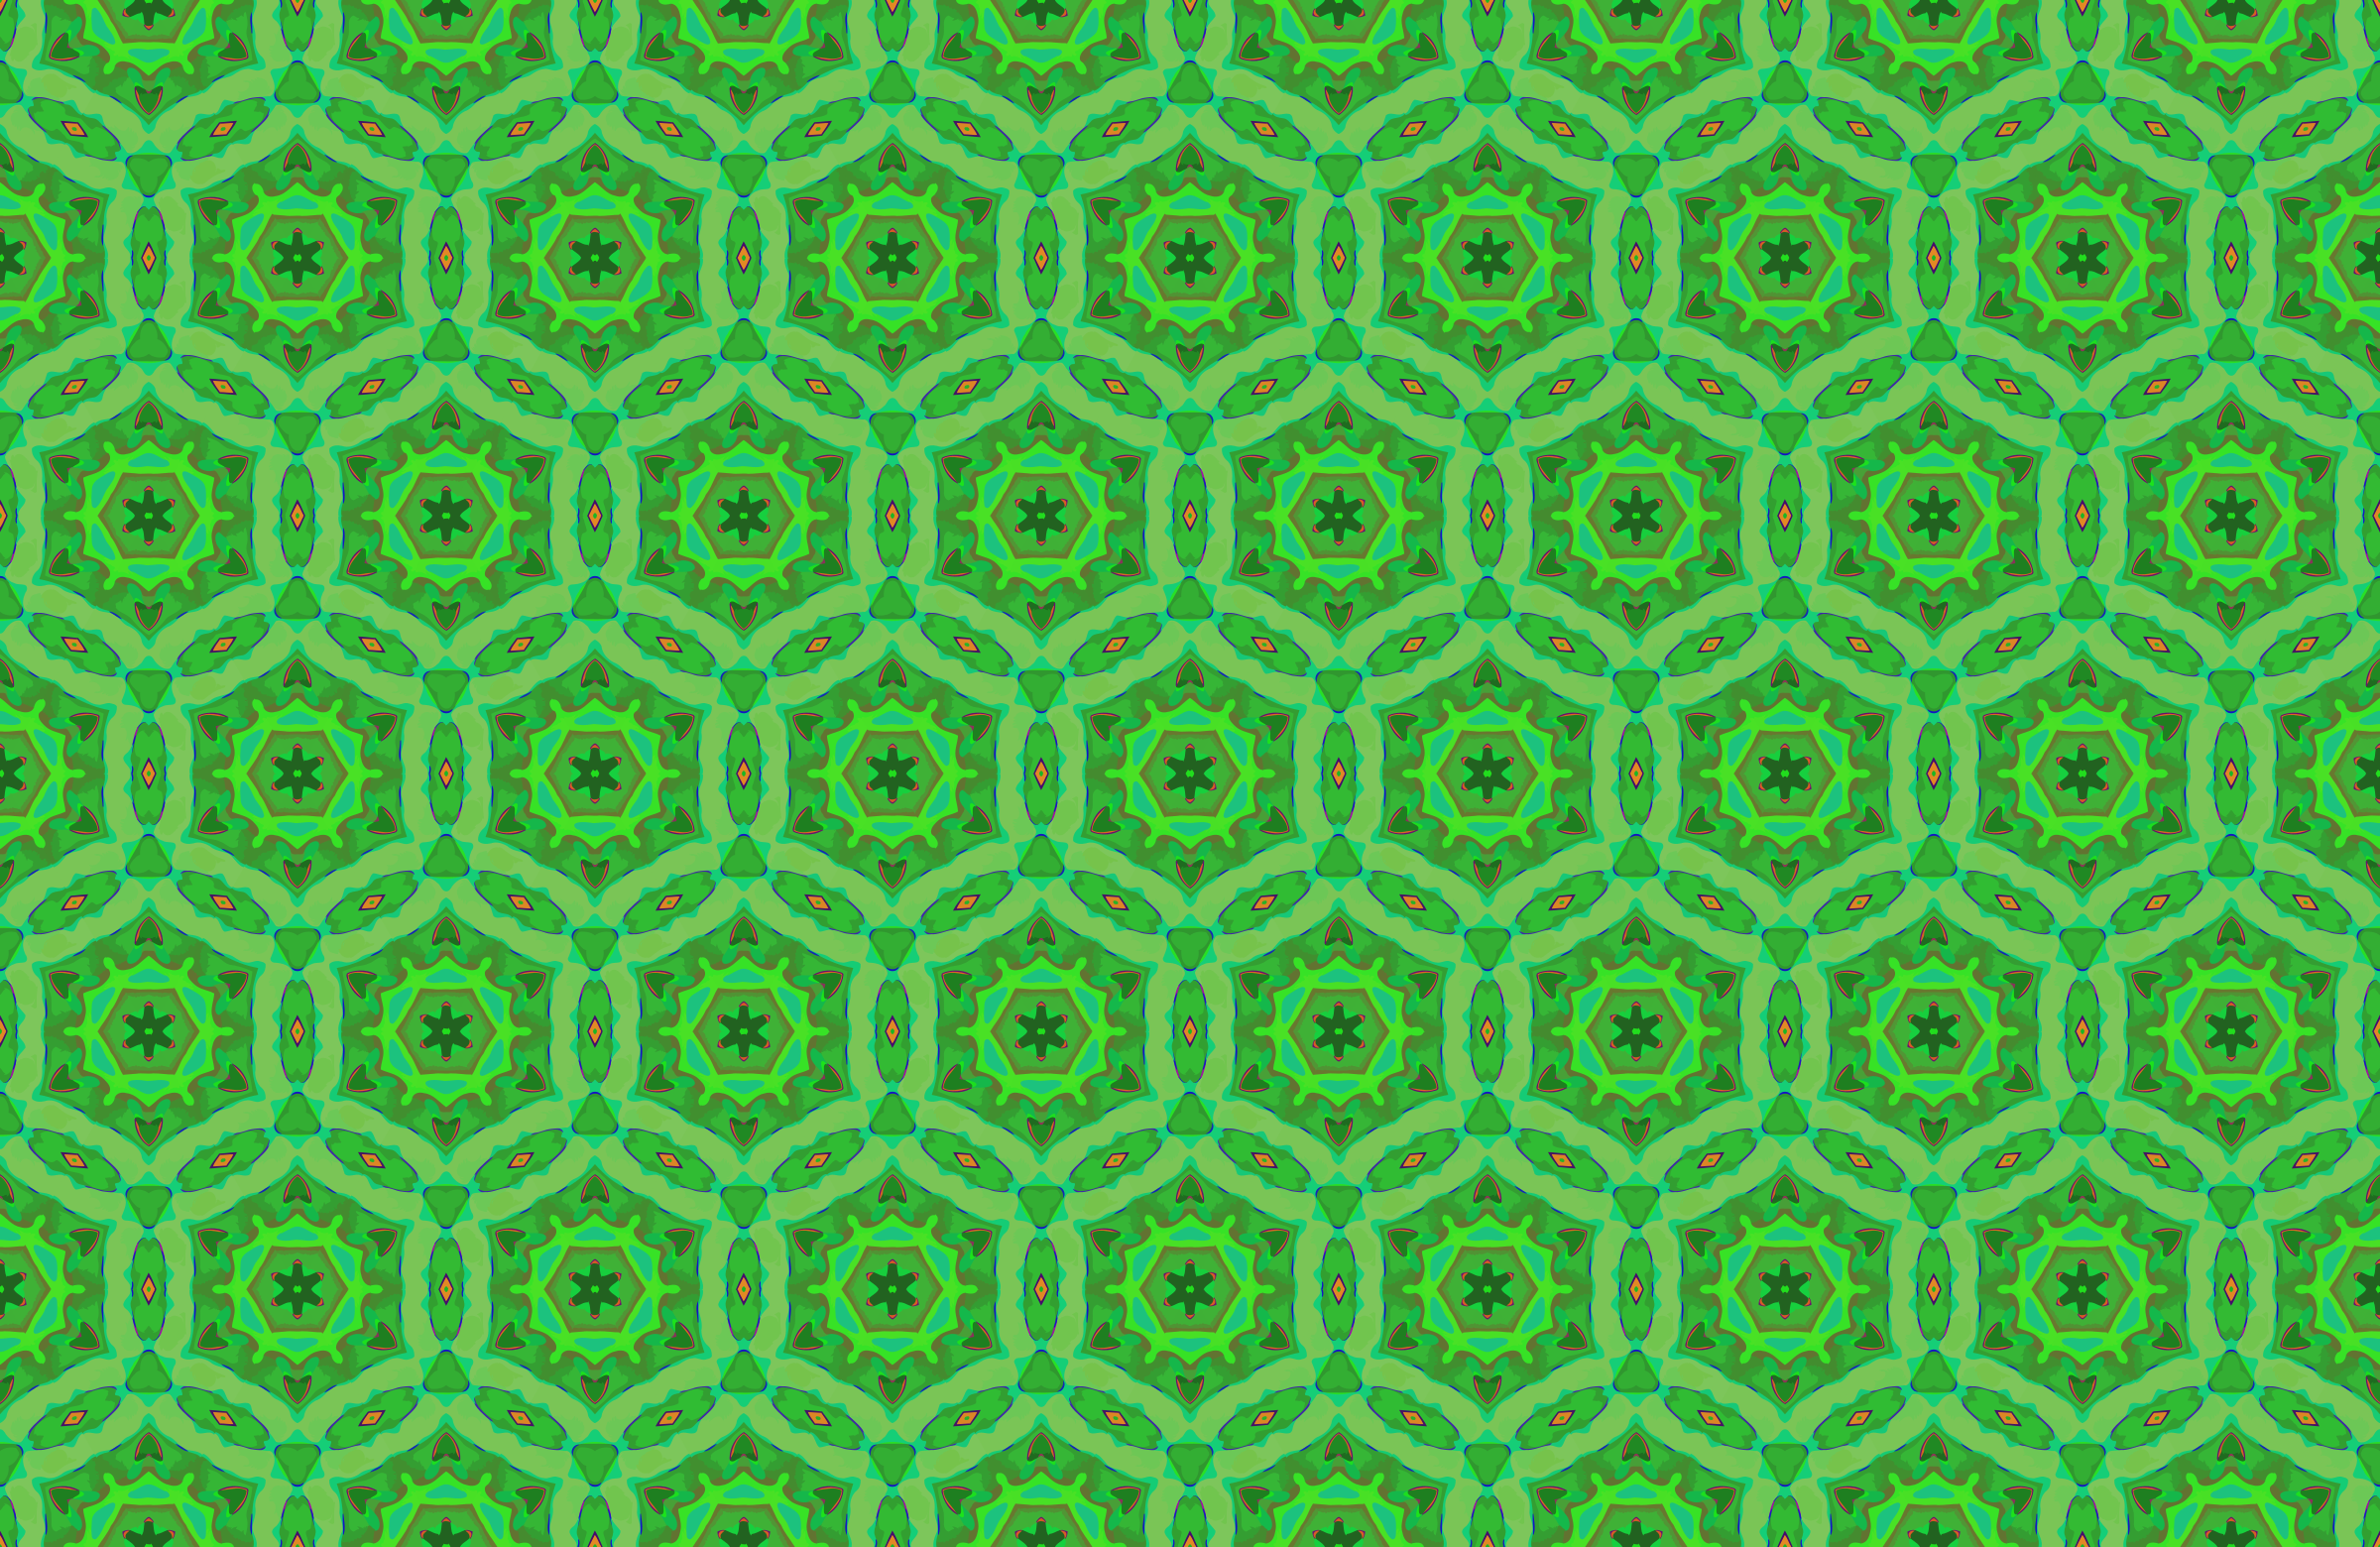 Background pattern 117 (colour 3) by Firkin